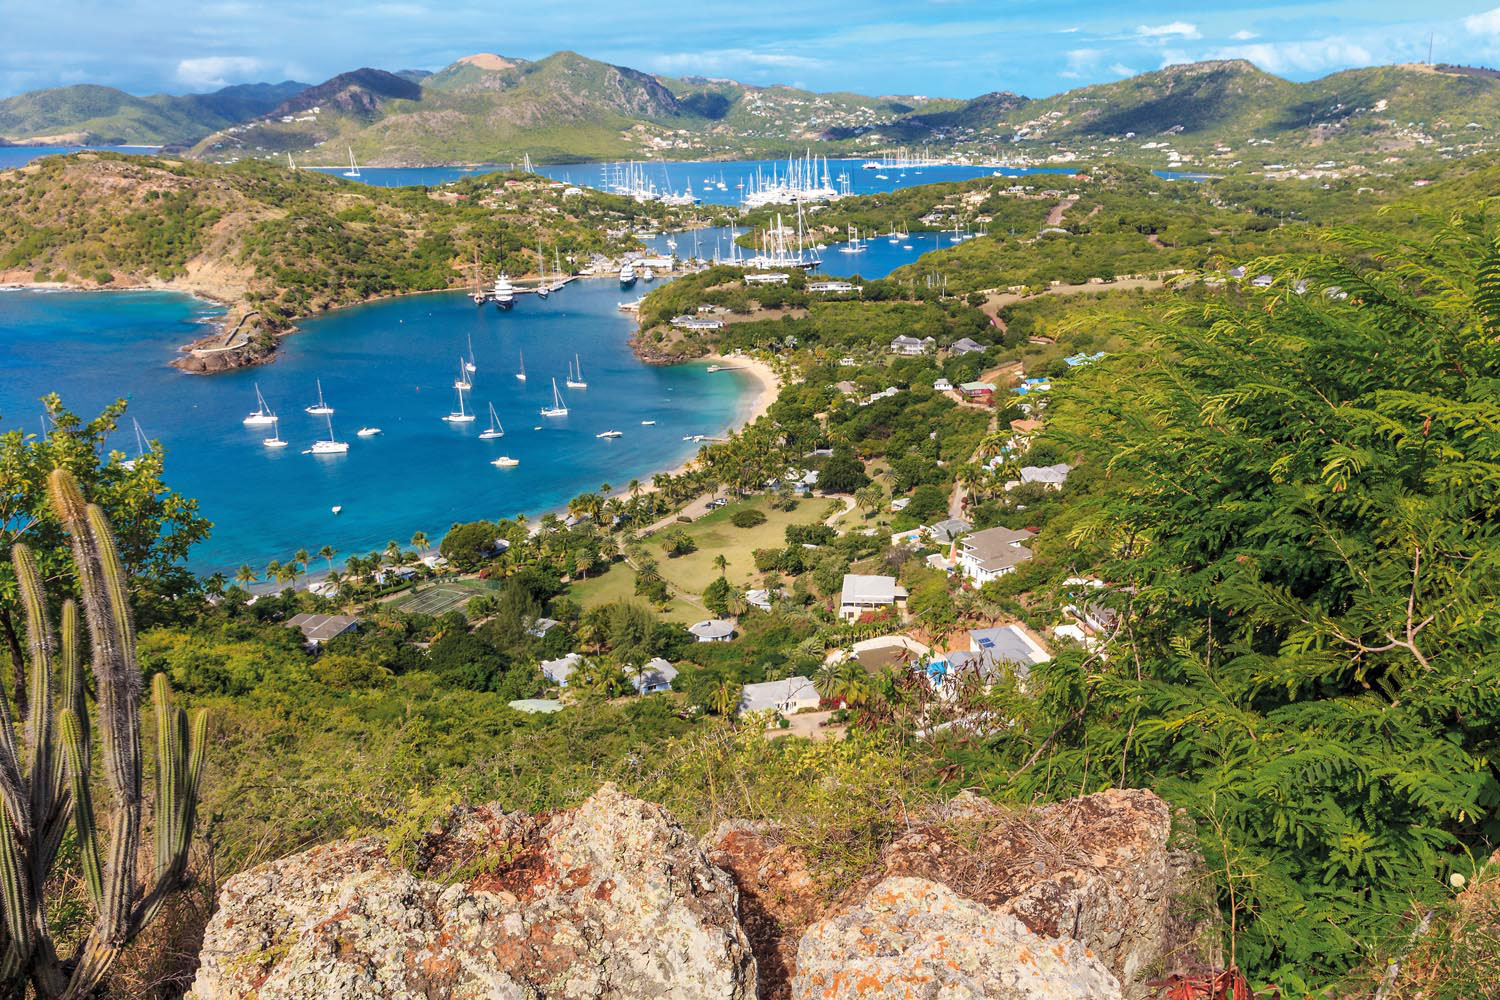 A cross-country bike ride is an invigorating way to explore Antigua's glorious landscape. Photo by Bertl123/Shutterstock.com